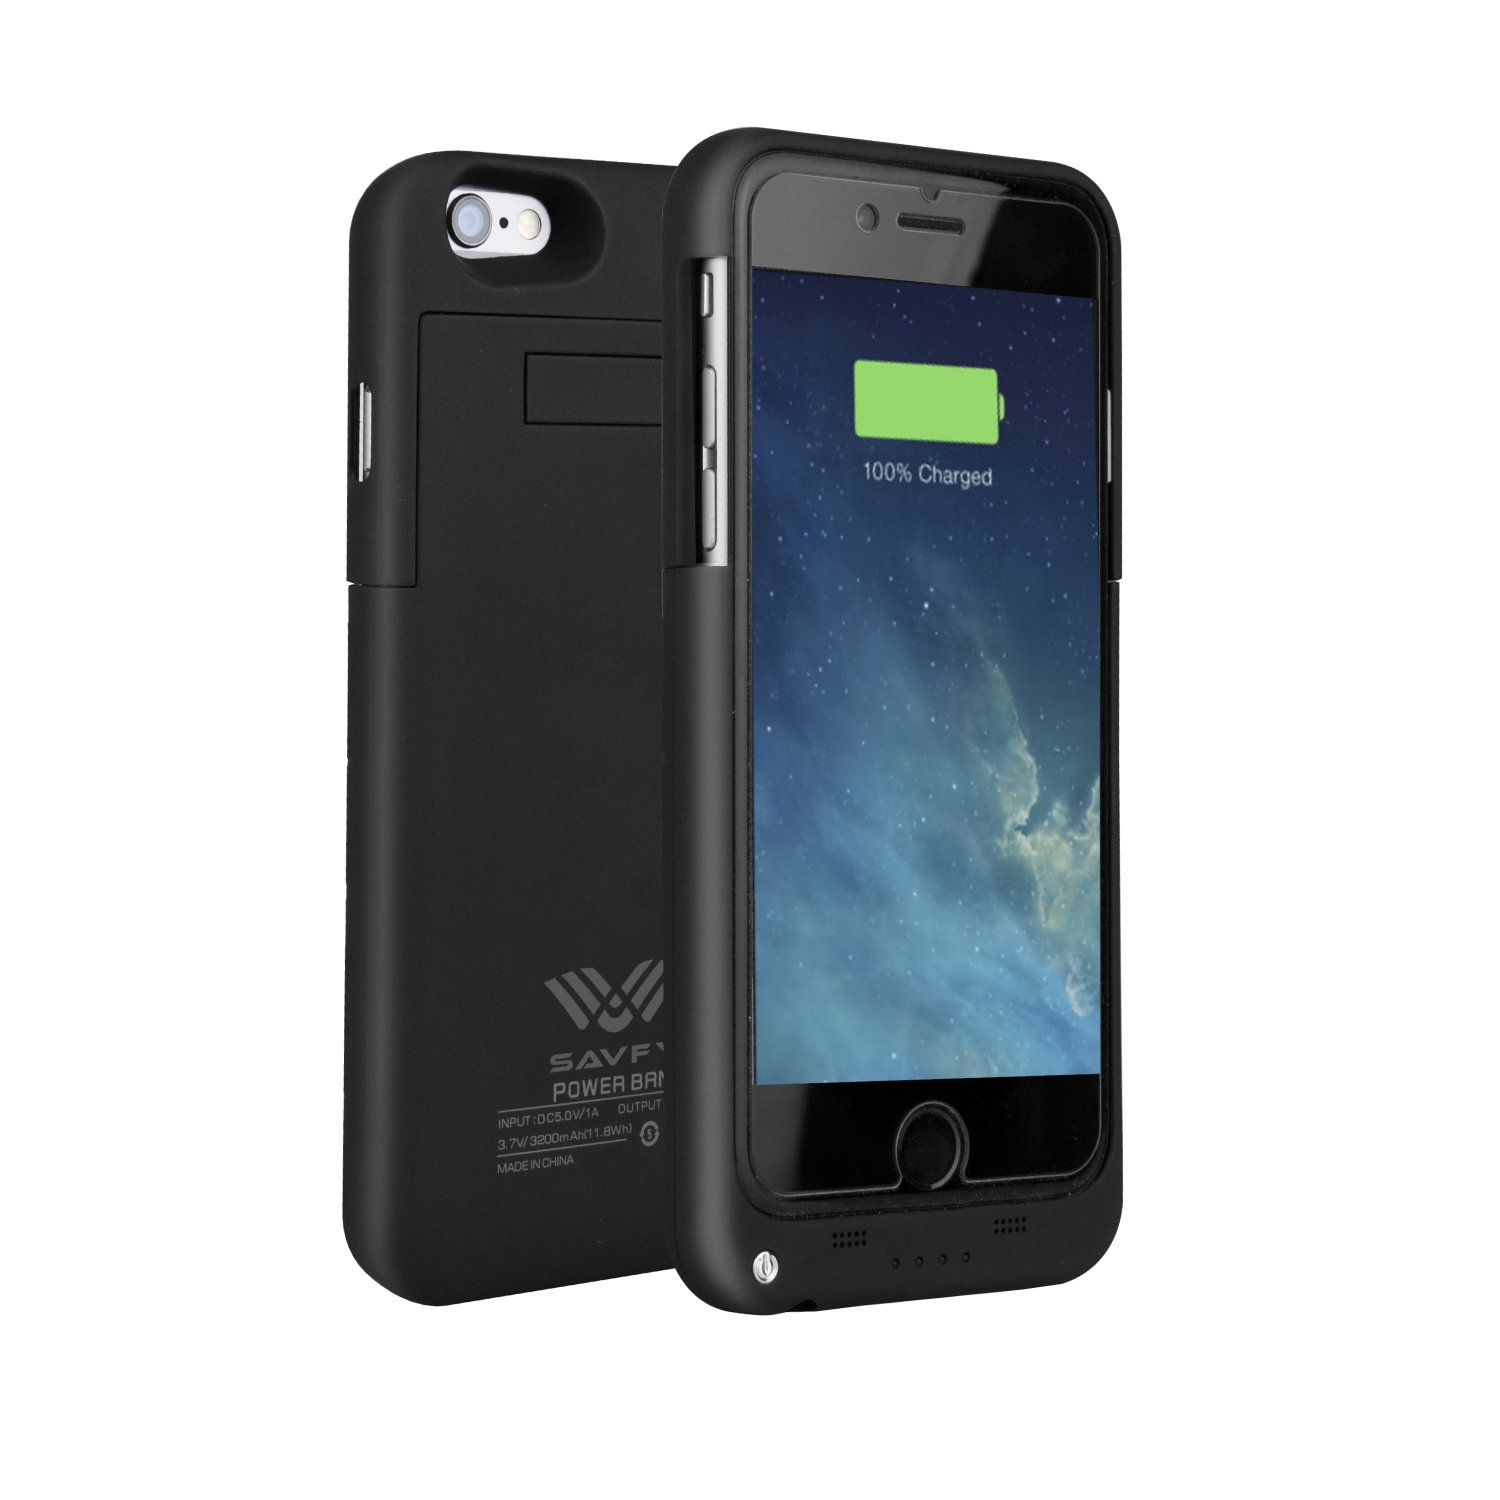 Battery Symbol Iphone Top 10 Best Iphone 6 And Iphone 6 Plus Battery Case Covers